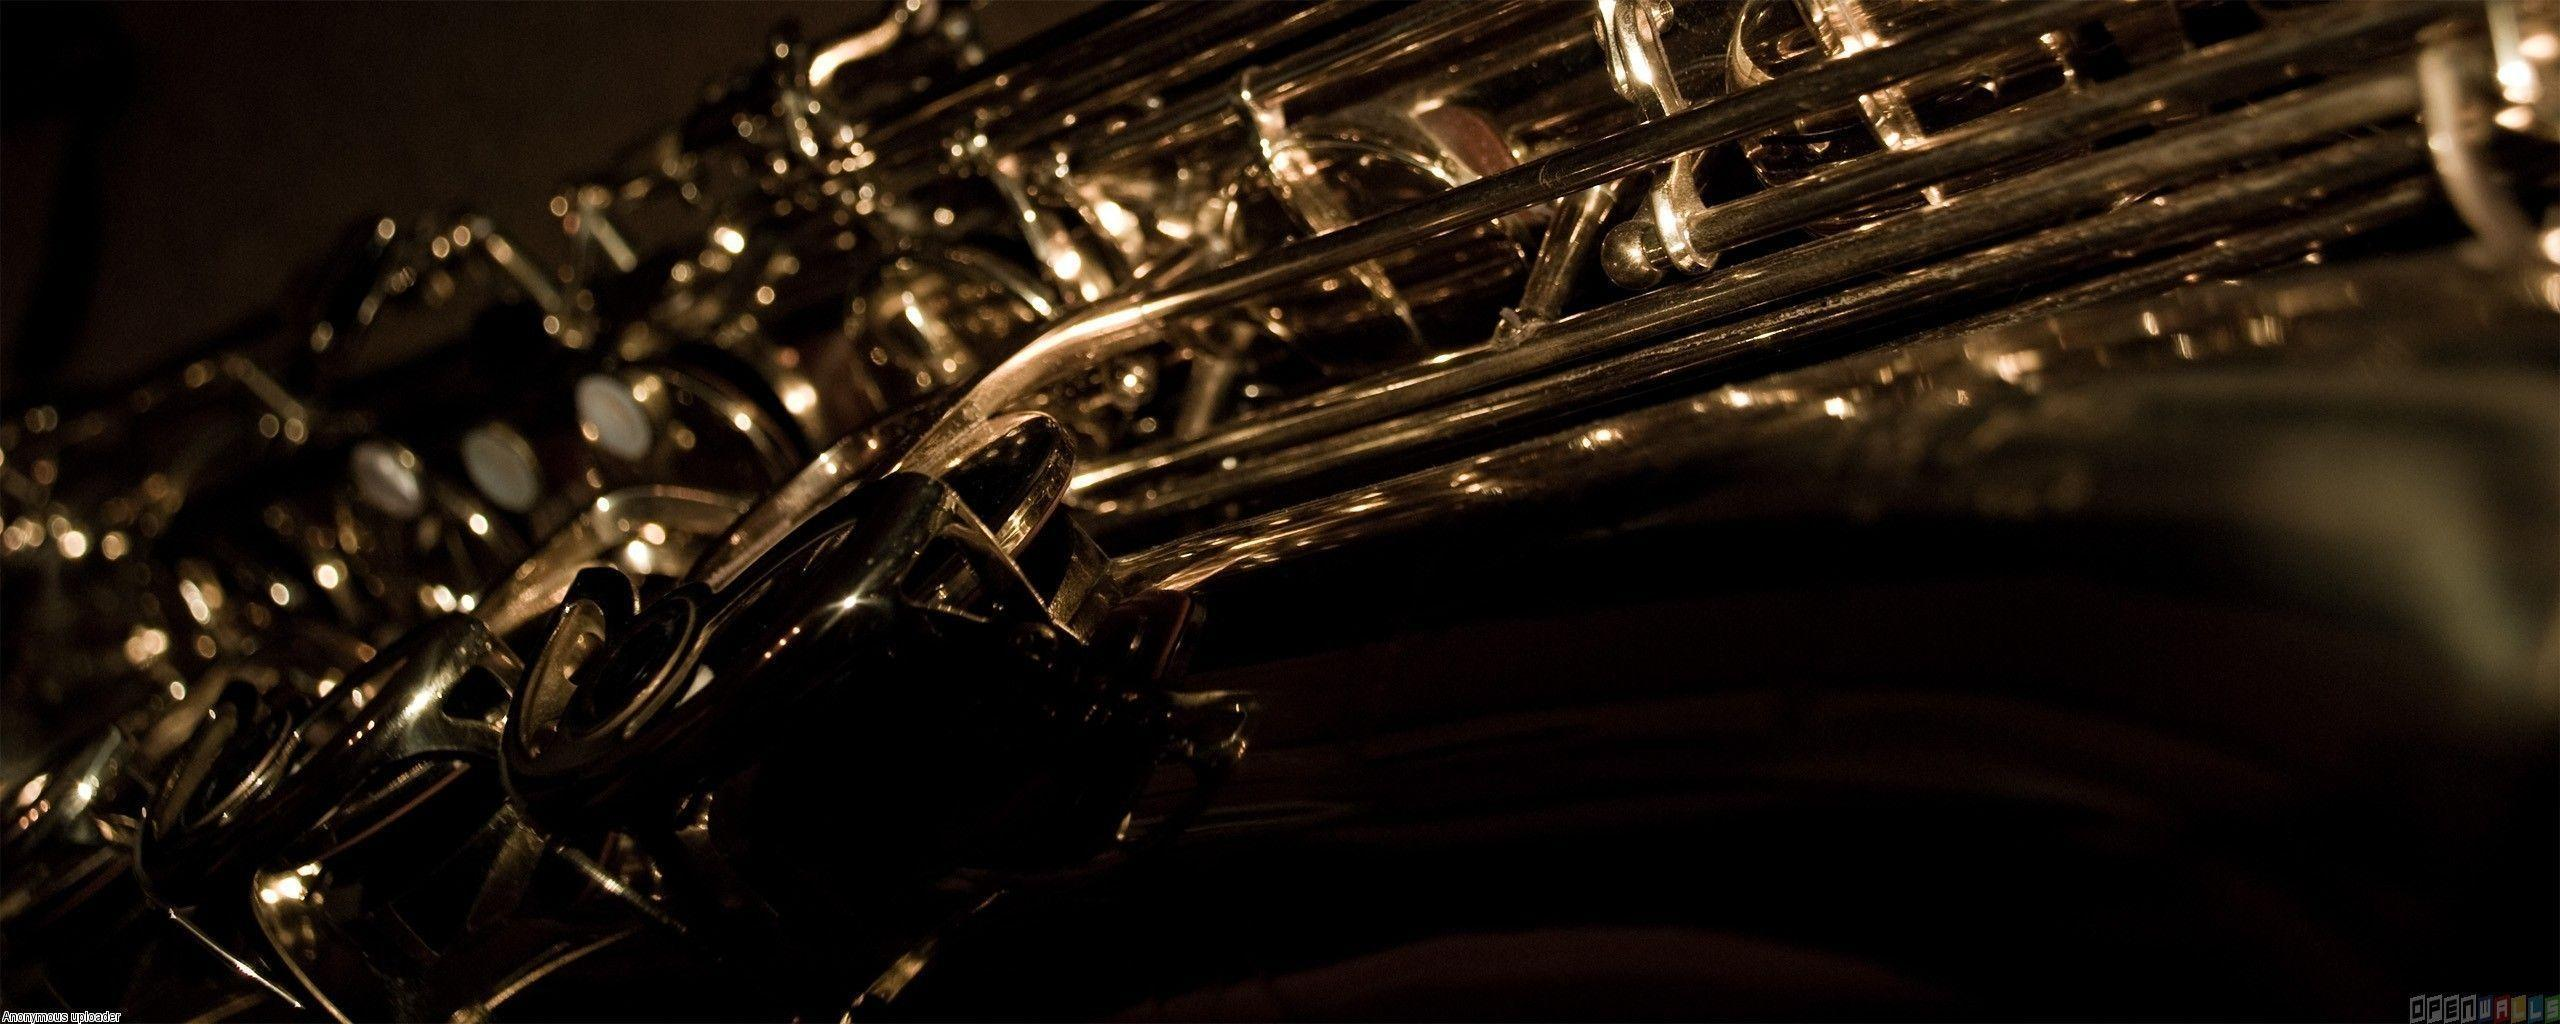 Saxophone Wallpaper Wallpaper Full HD